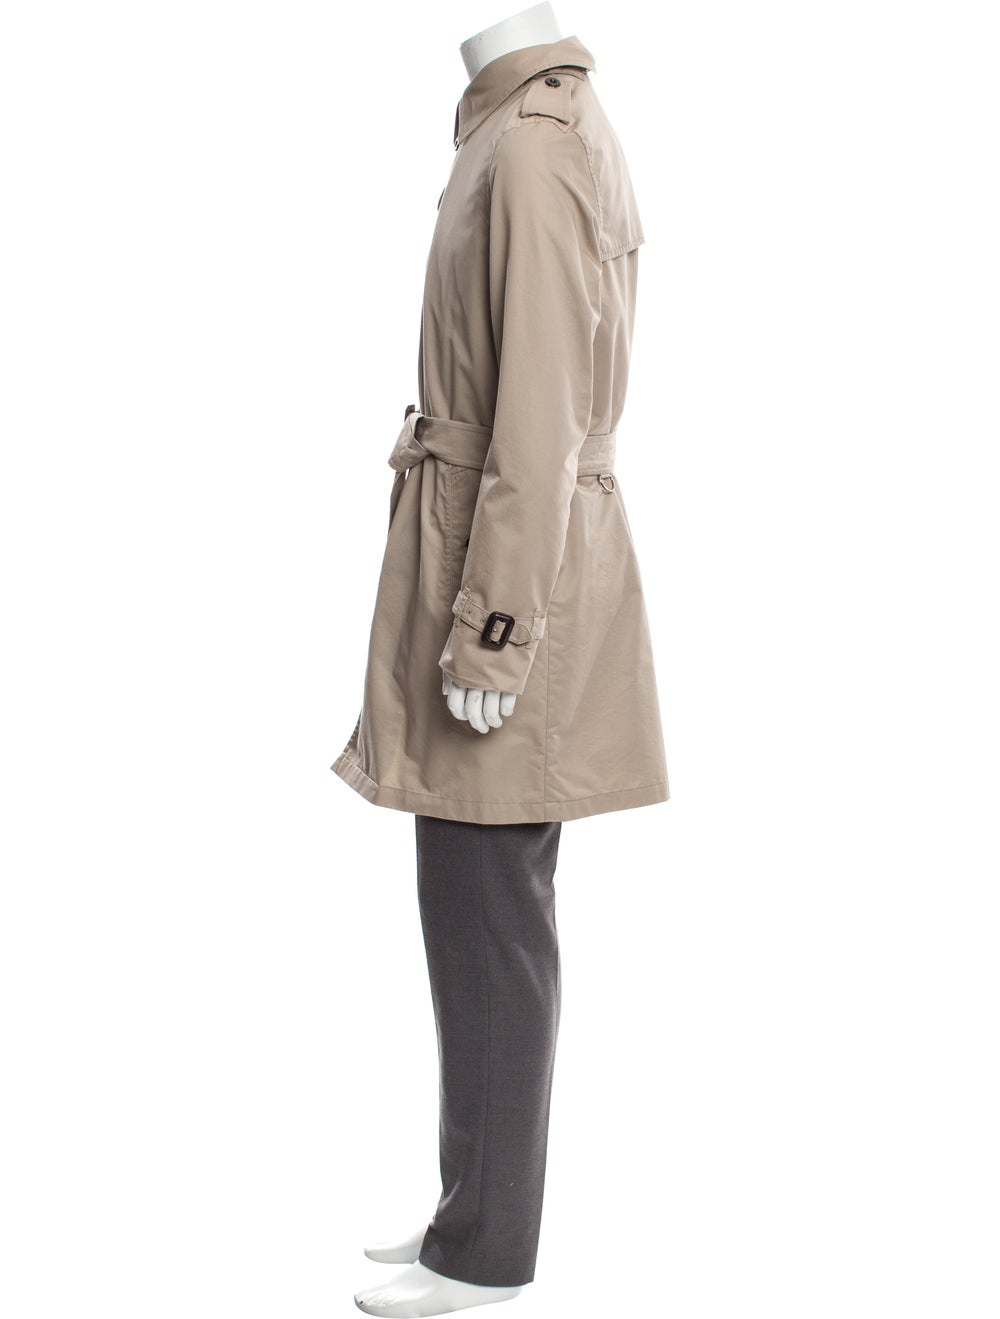 Burberry London Check-Lined Trench Coat beige - image 2